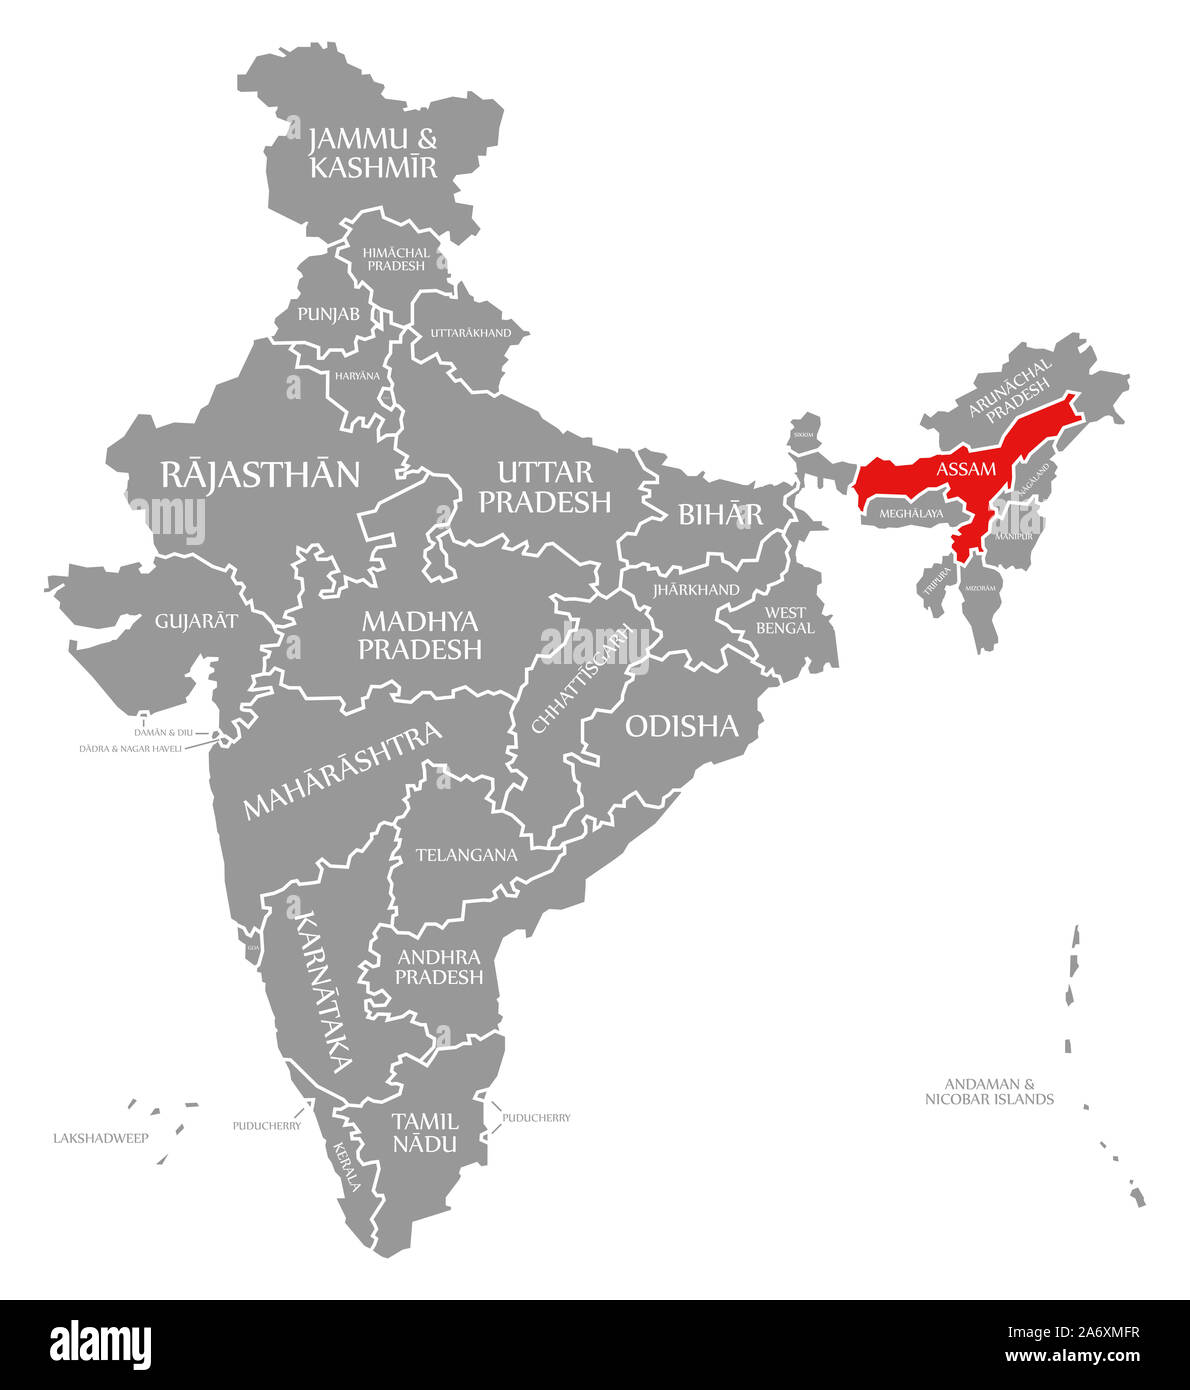 Assam Map High Resolution Stock Photography And Images Alamy